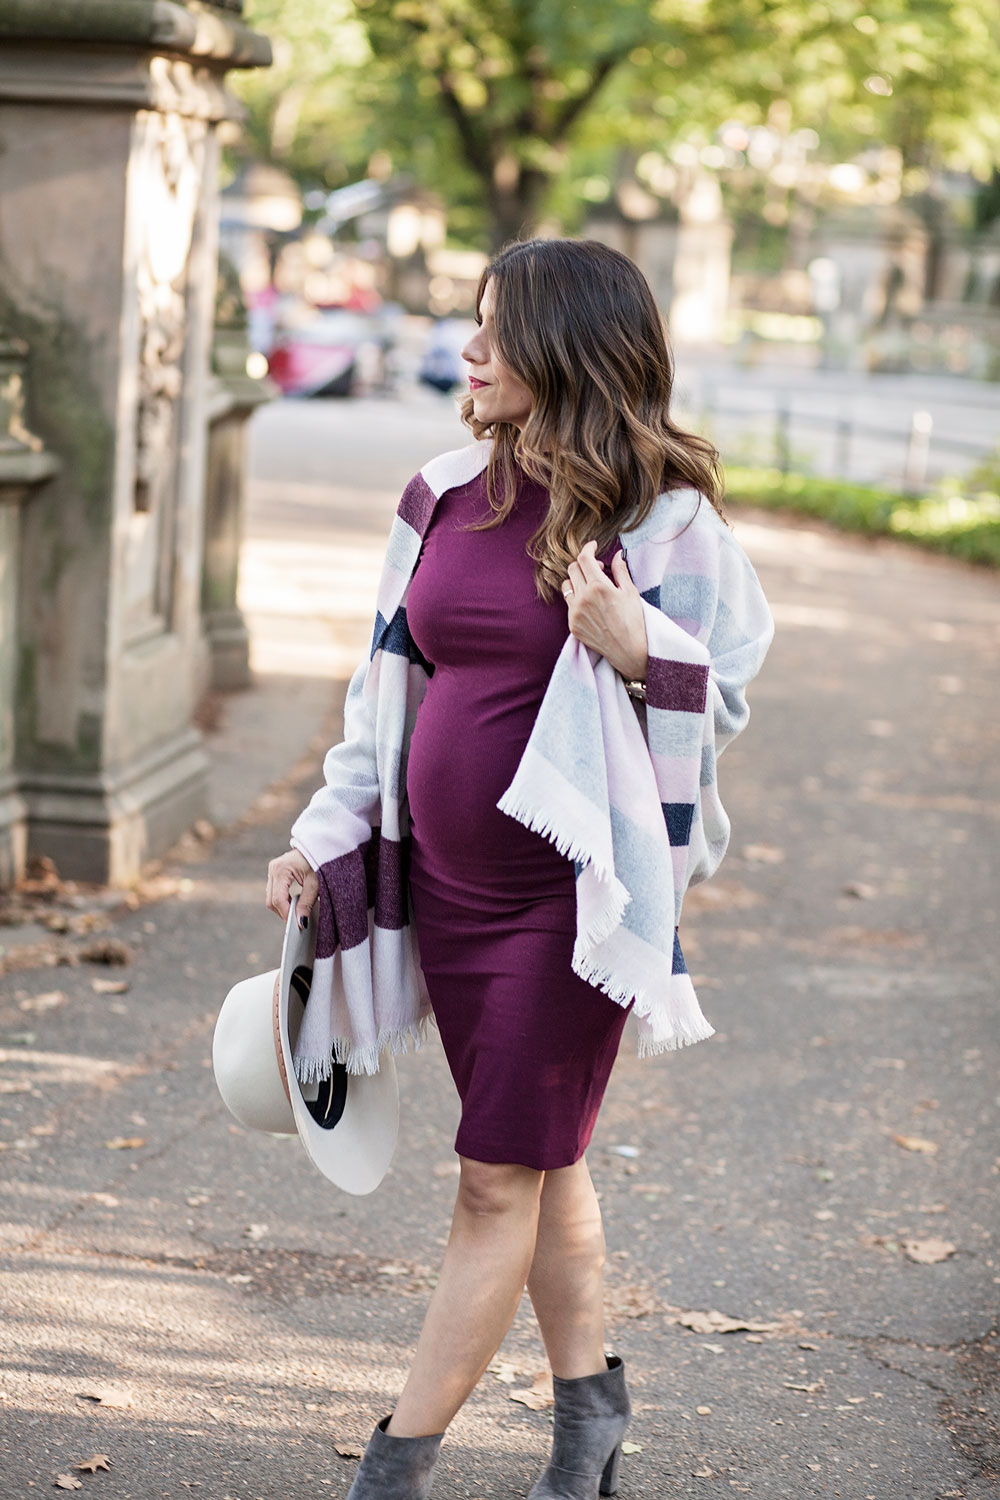 fall-style-talbots-blanket-sweater-central-park-maternity-style-what-to-wear-in-the-fall-corporate-catwalk3